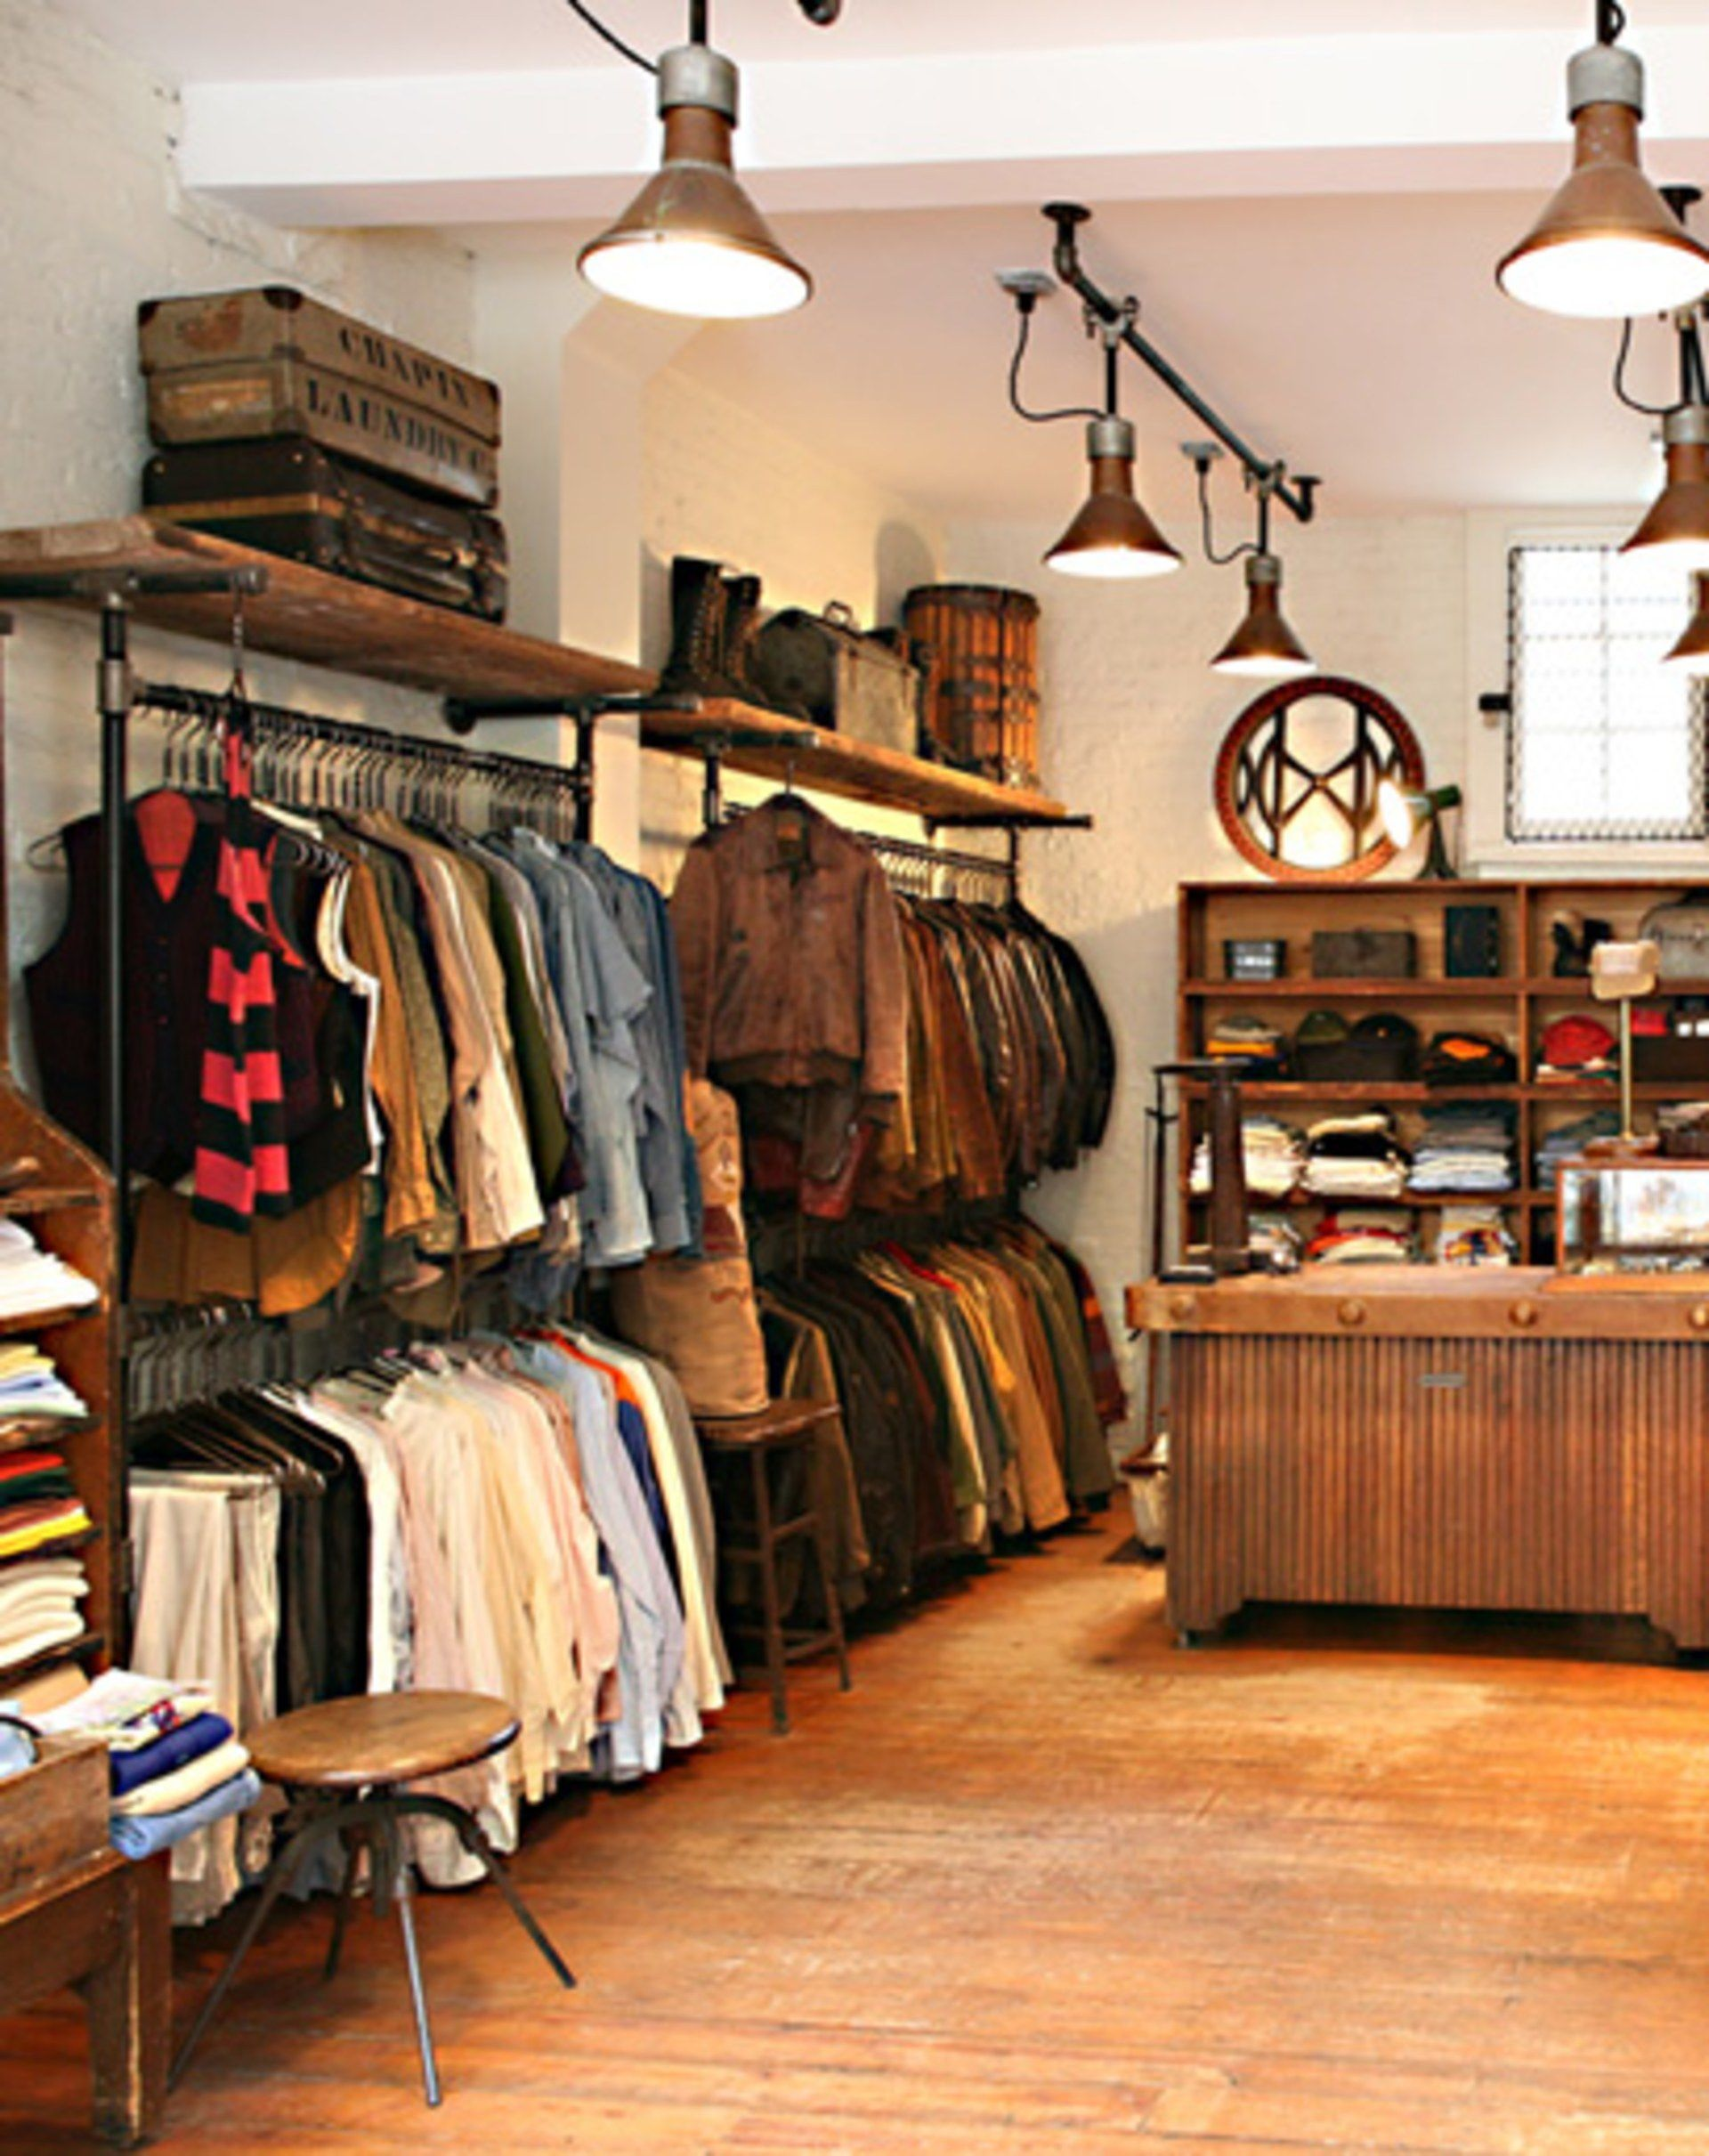 The 25 Best Vintage Stores in America Store interiors